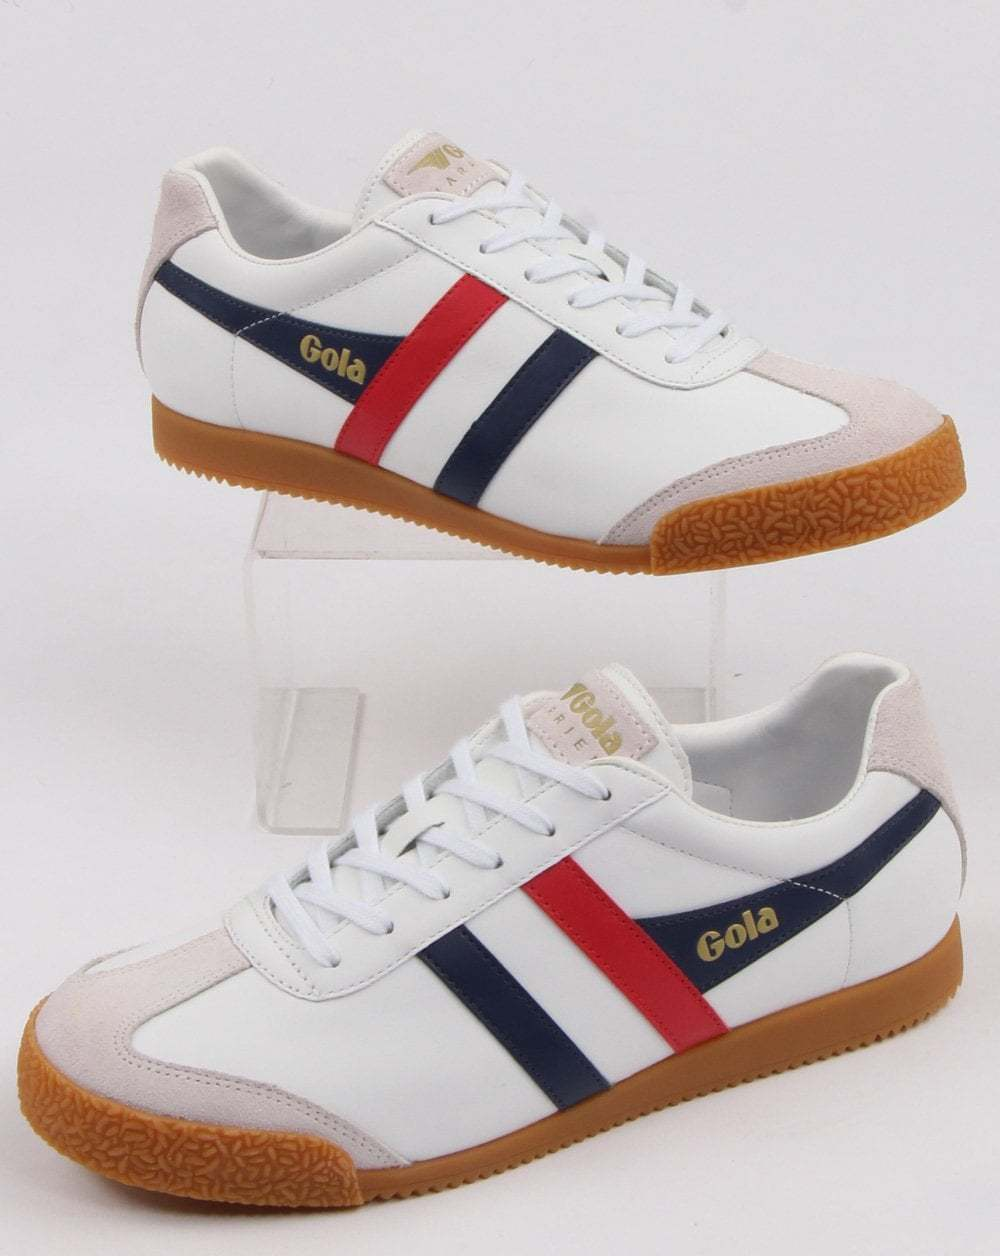 Gola Harrier Leather Trainer in Weiß, Navy & rot - gum sole retro 70s 80s 90s